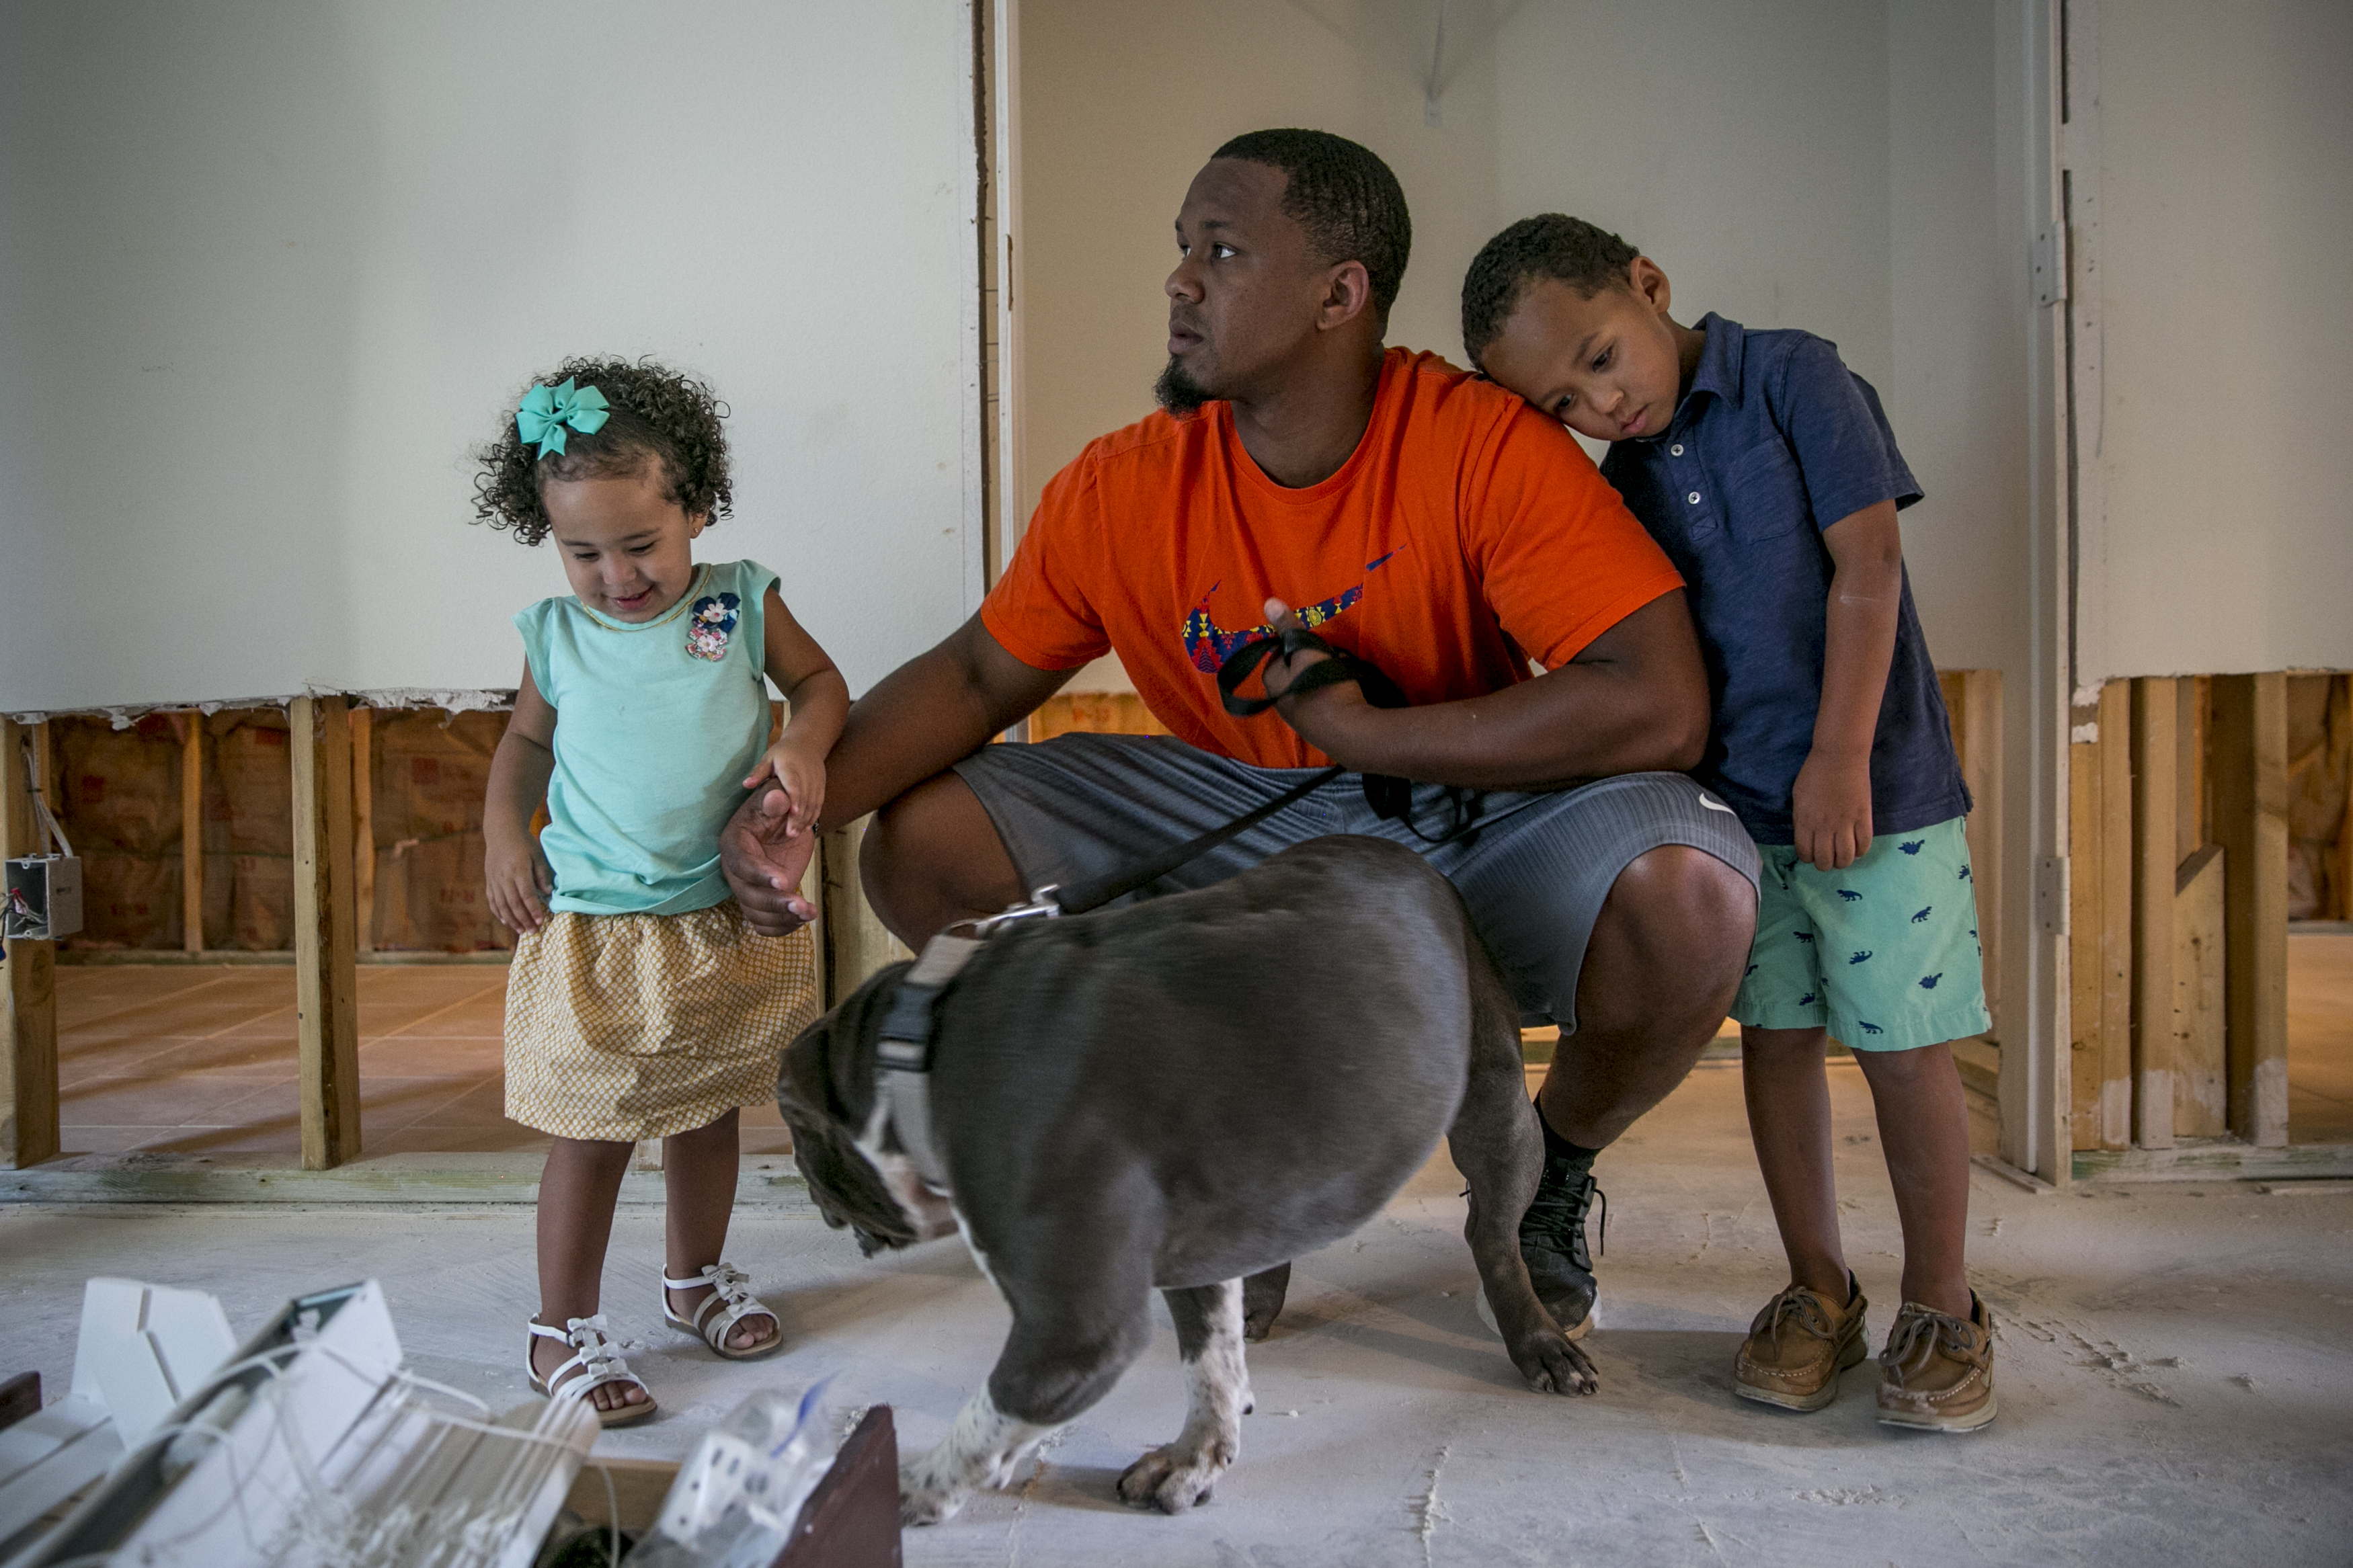 Isiah and his children Bryson and Aubree inside their home.